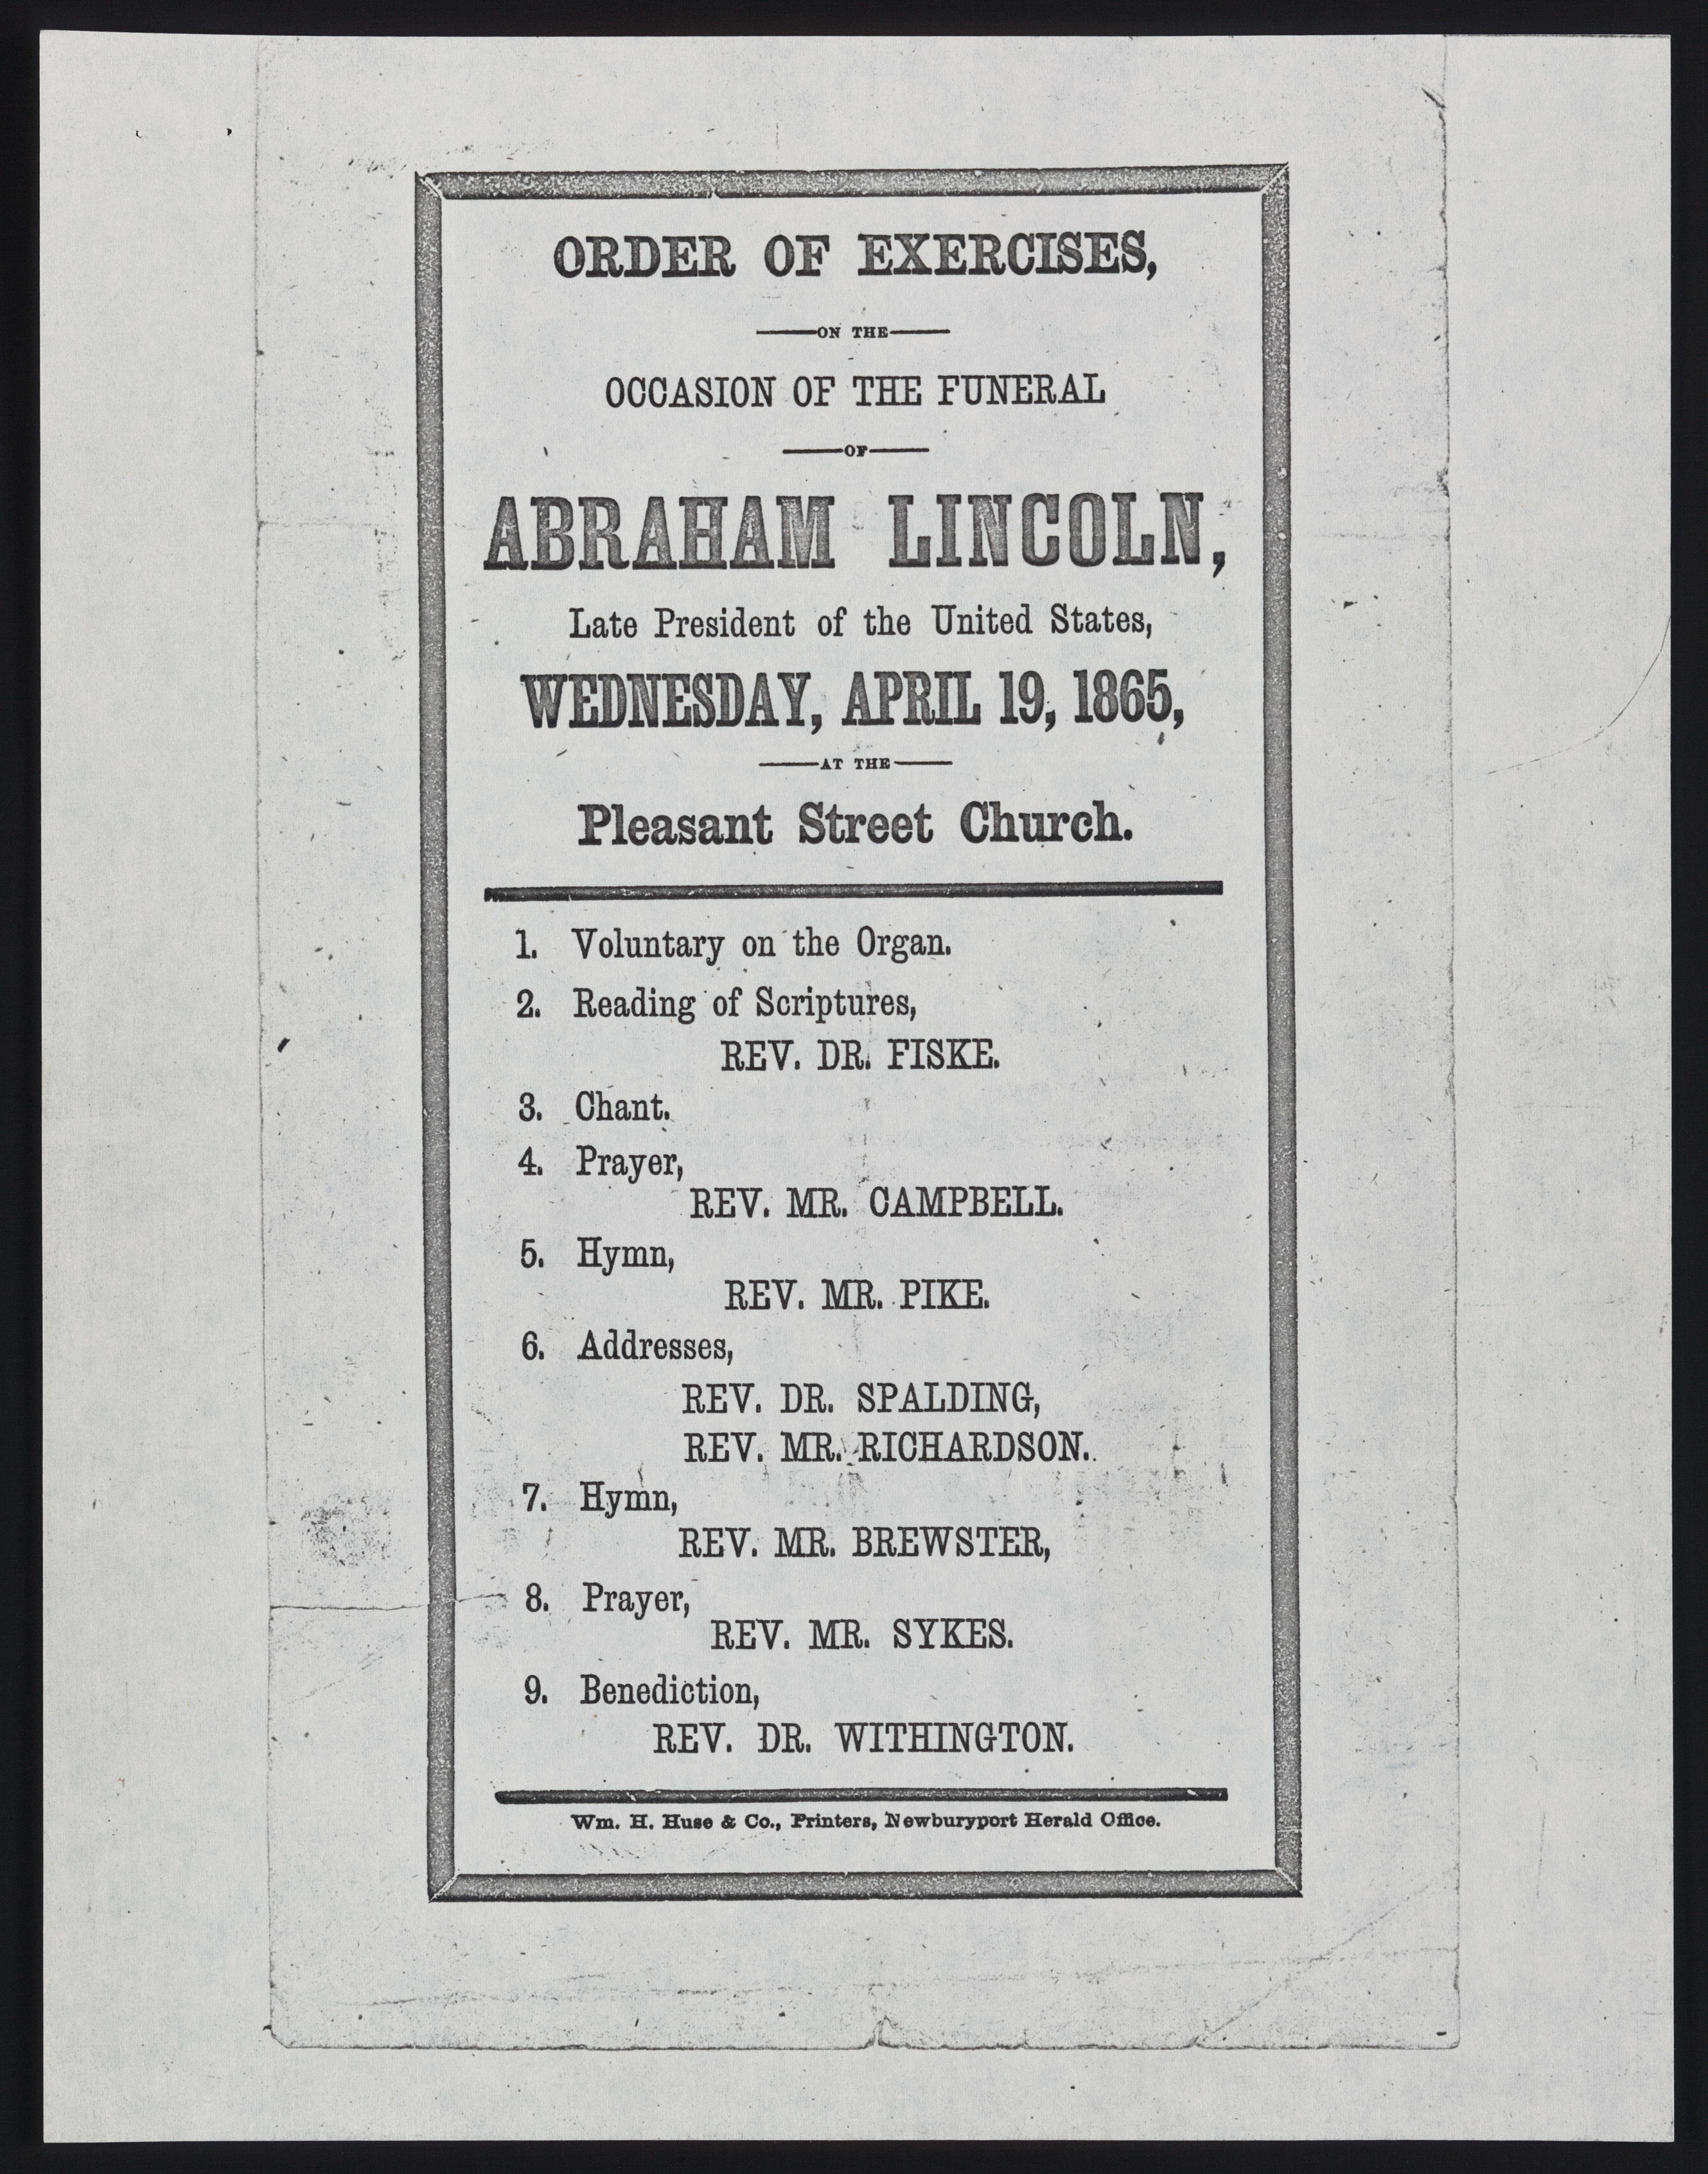 Order of Exercises, Occasion of the Funeral of Abraham Lincoln